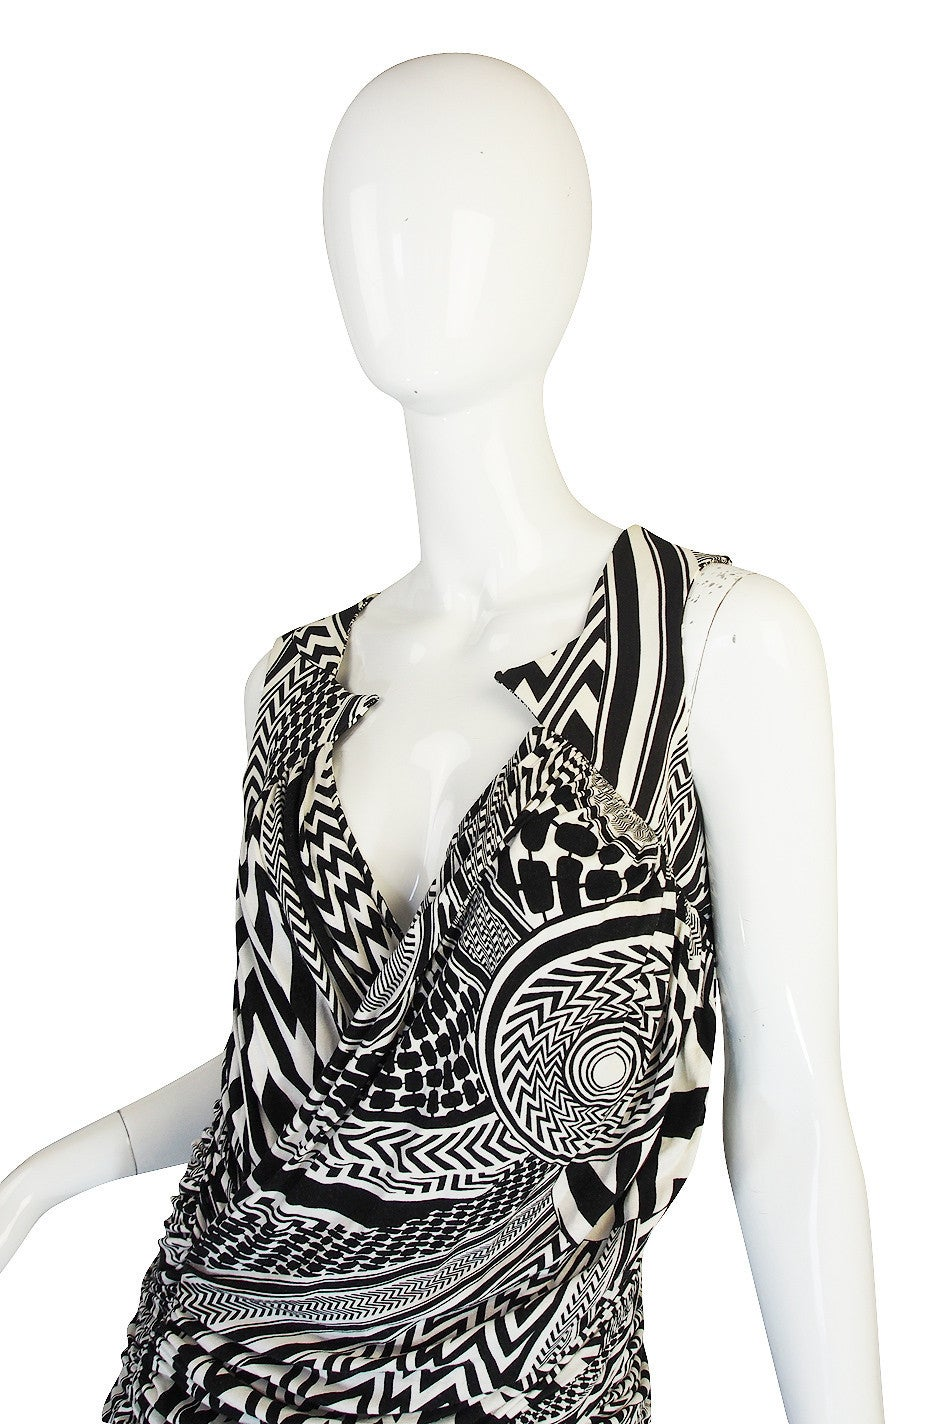 S/S 2010 Givenchy Tribal Print Mini Dress NWT 5